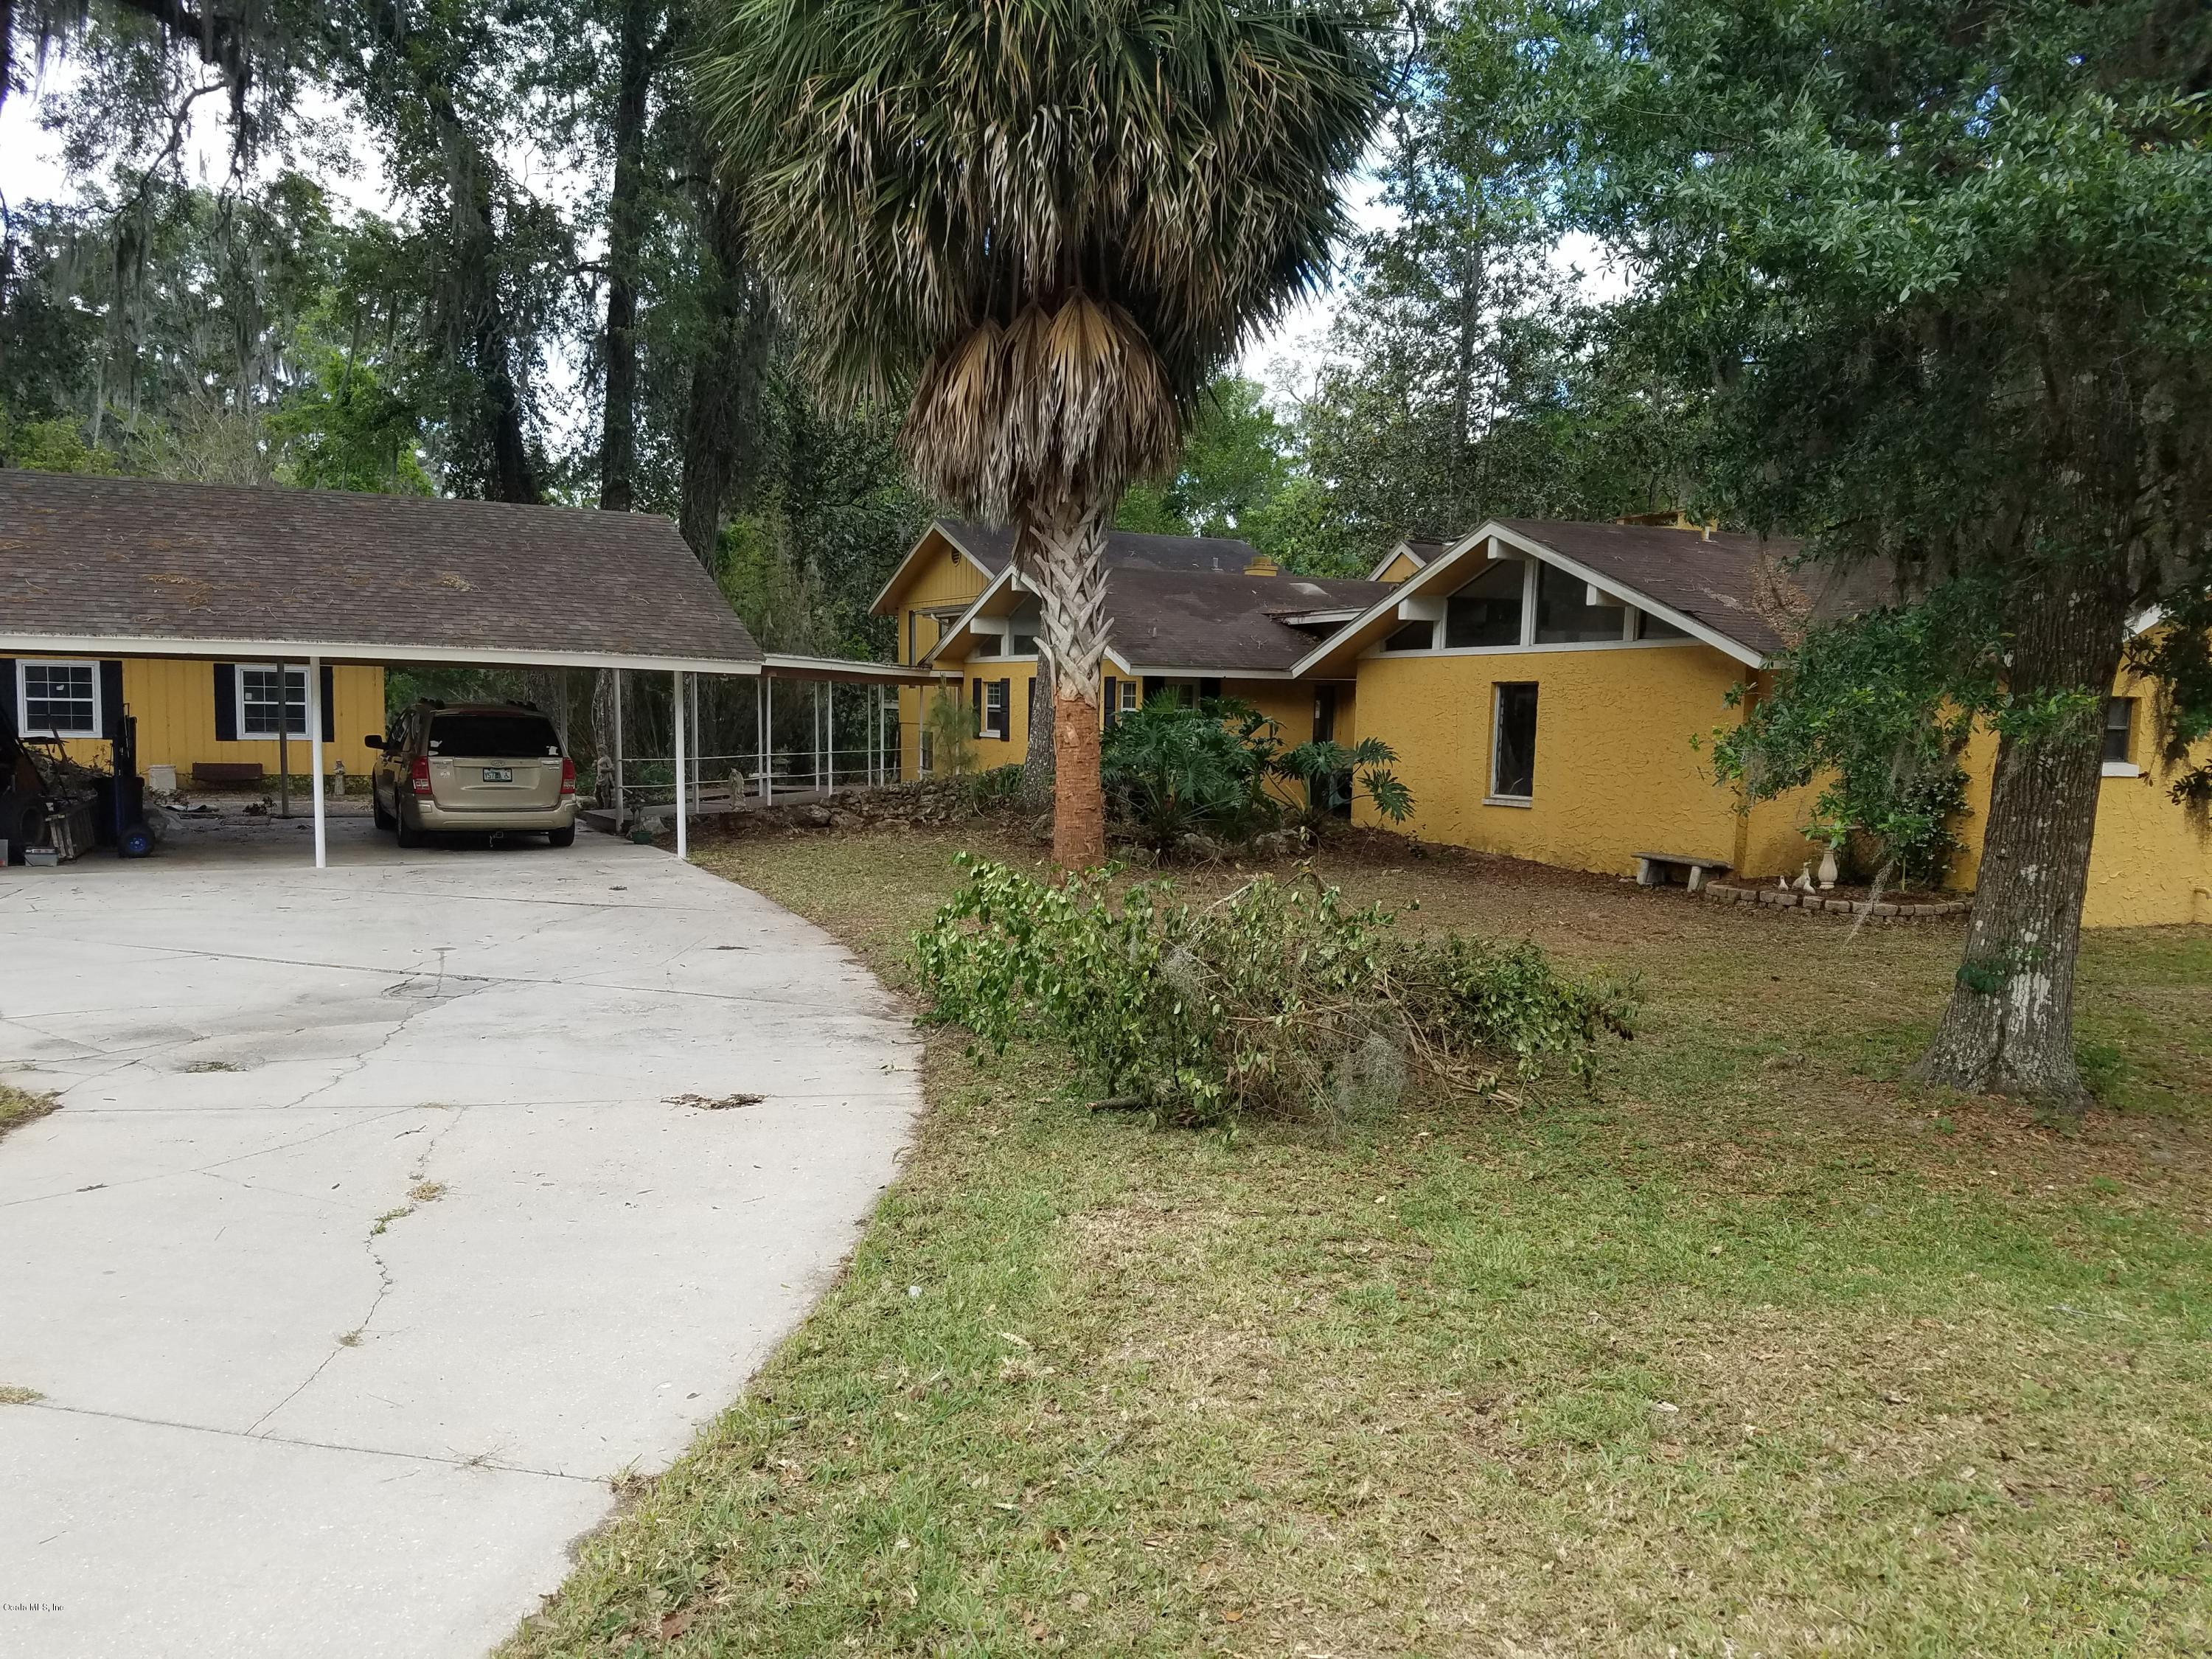 2460 SE 39TH STREET, OCALA, FL 34480